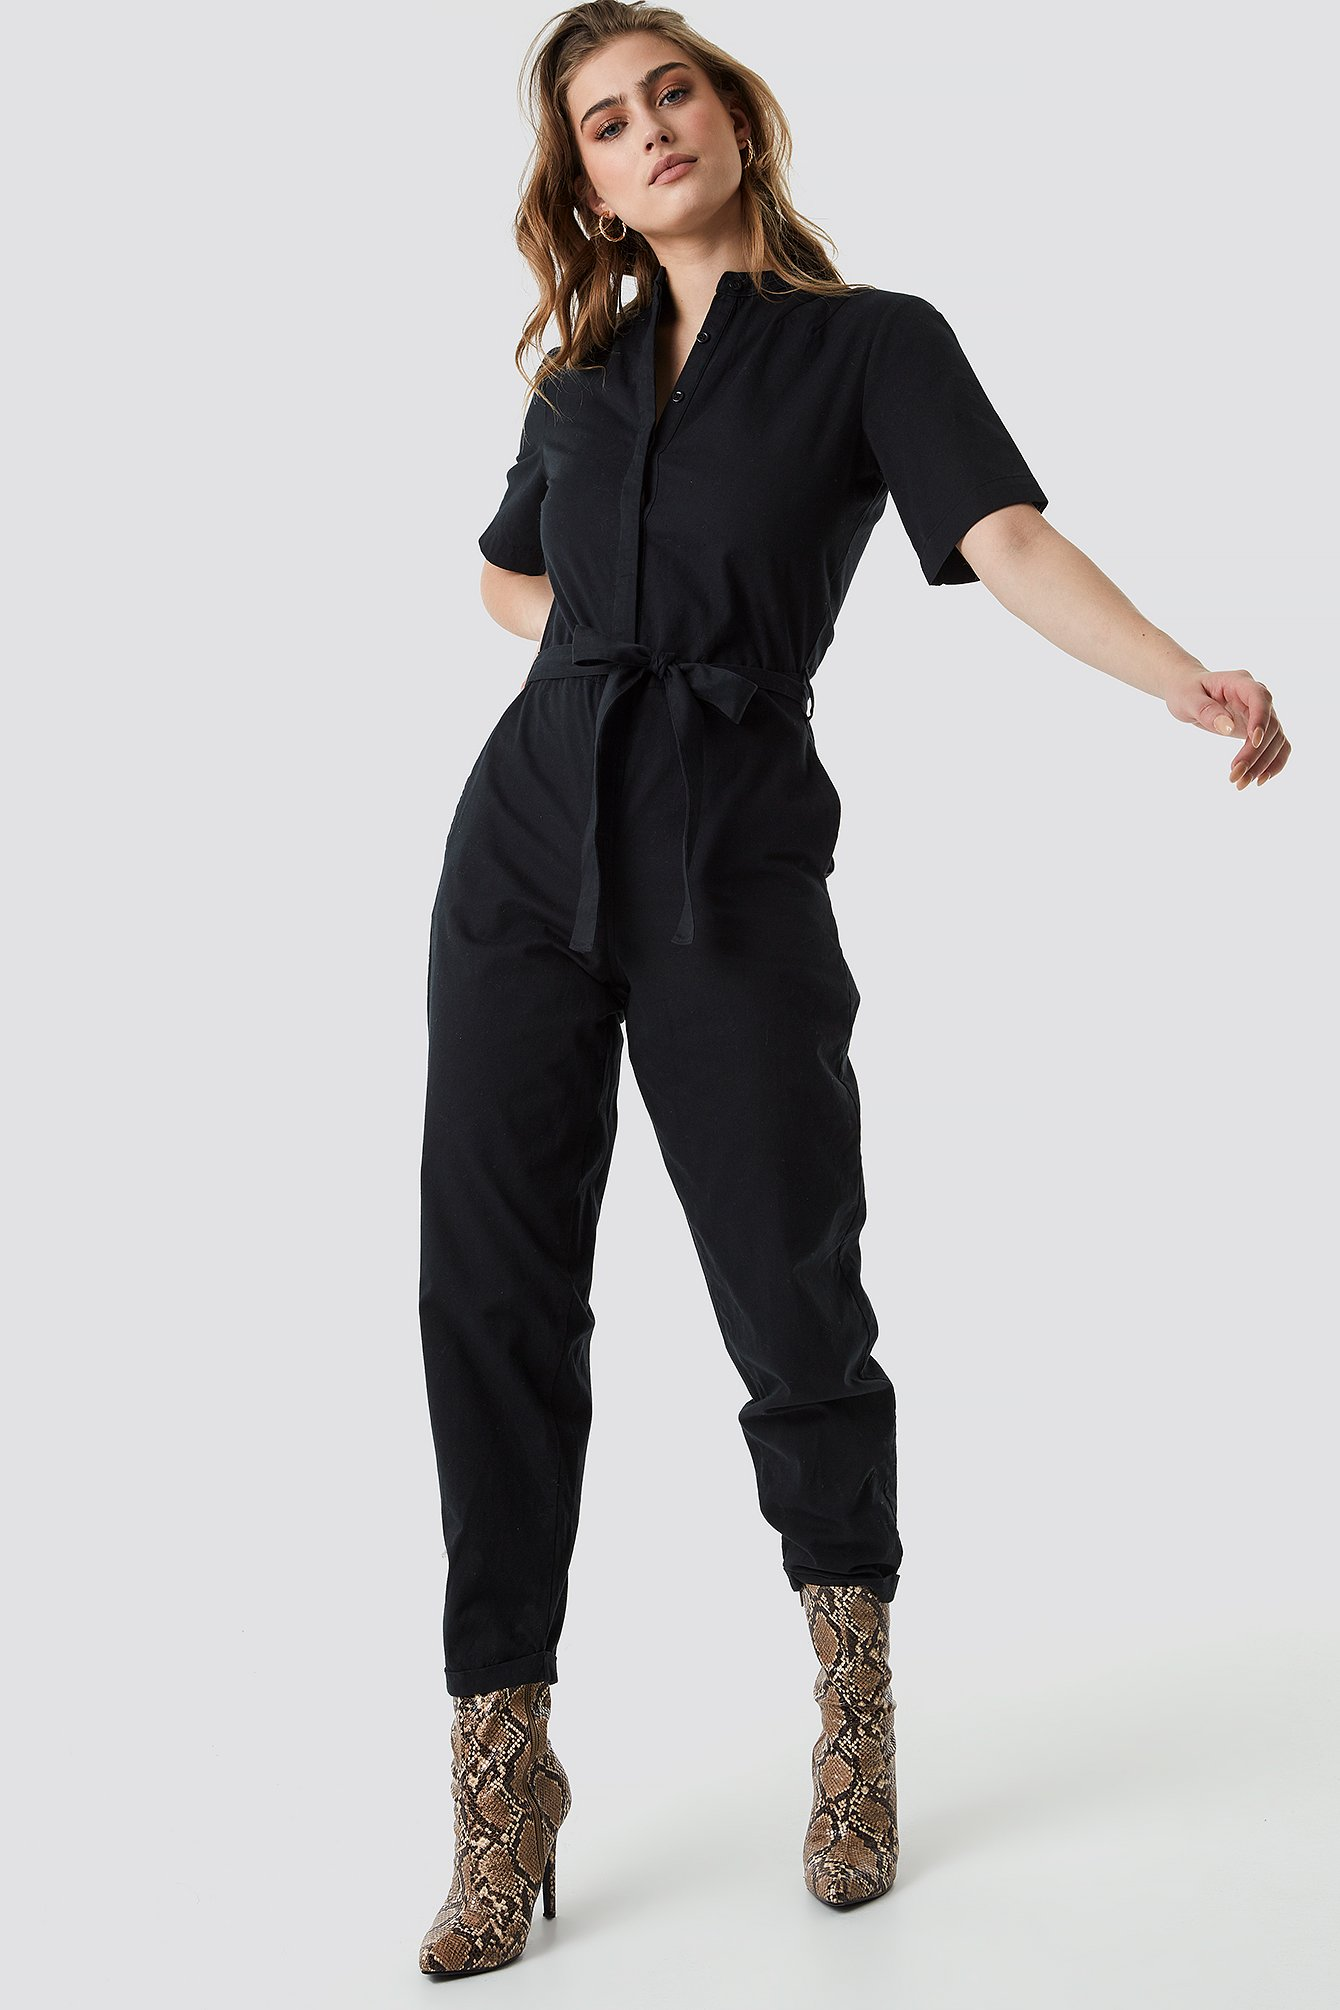 Short Sleeve Button Up Jumpsuit Noir by Na Kd